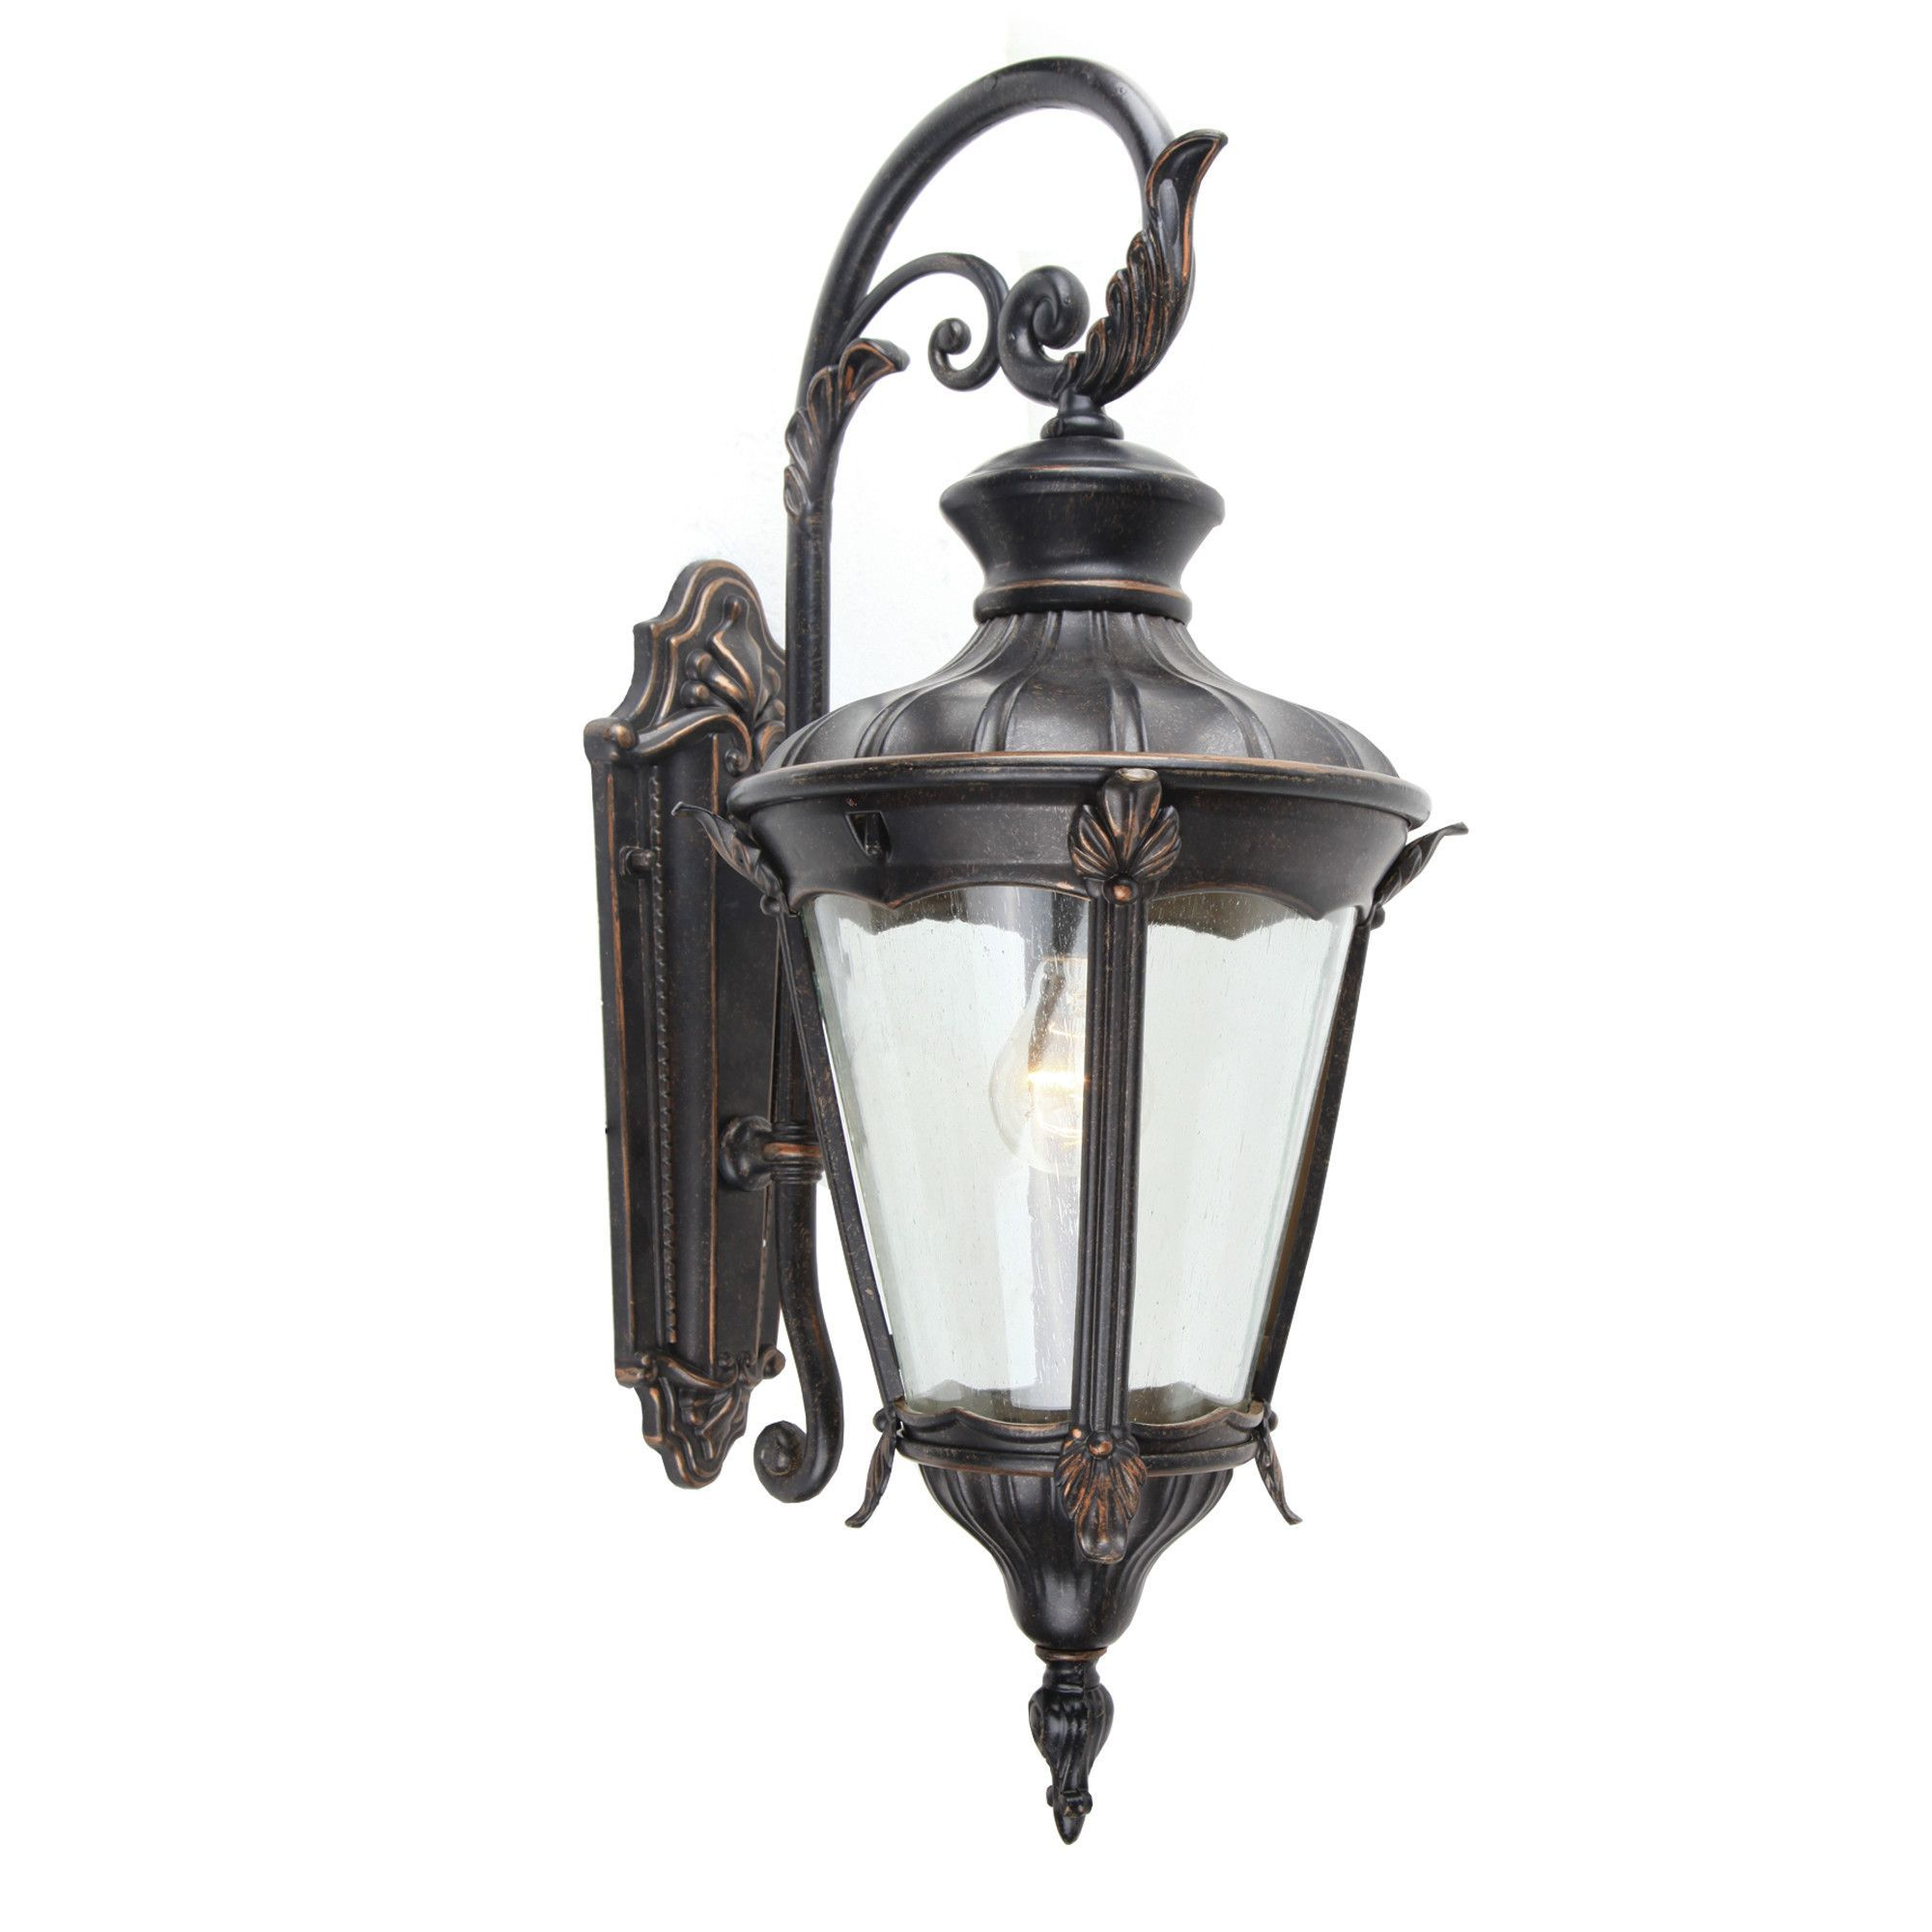 lbl ashland sumptuous by wall for with wscoscled lighting stylish depot design impressive modern battery sconce innovation led operated sconces home